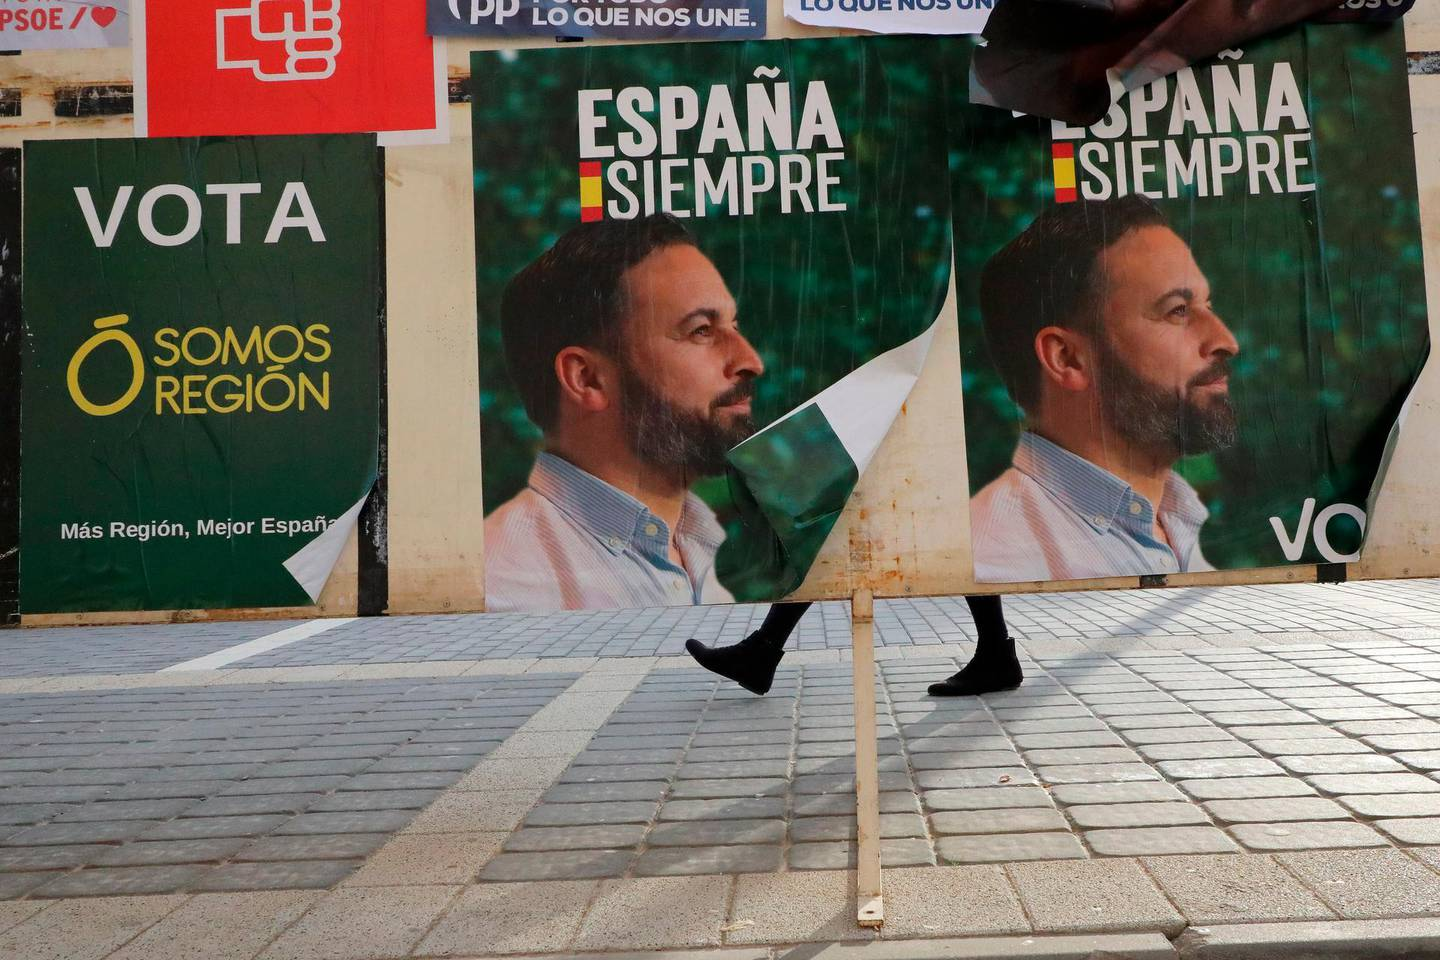 A woman walks past banners of Spain's far-right Vox party candidate Santiago Abascal in Torre-Pacheco, Spain, Monday, Nov. 11, 2019. The farming town of Torre-Pacheco, heavily reliant on foreign workers, voted in droves for Vox, which has vowed to build walls to contain migrants and prioritize the needs of Spaniards. (AP Photo/Sergio Rodrigo)